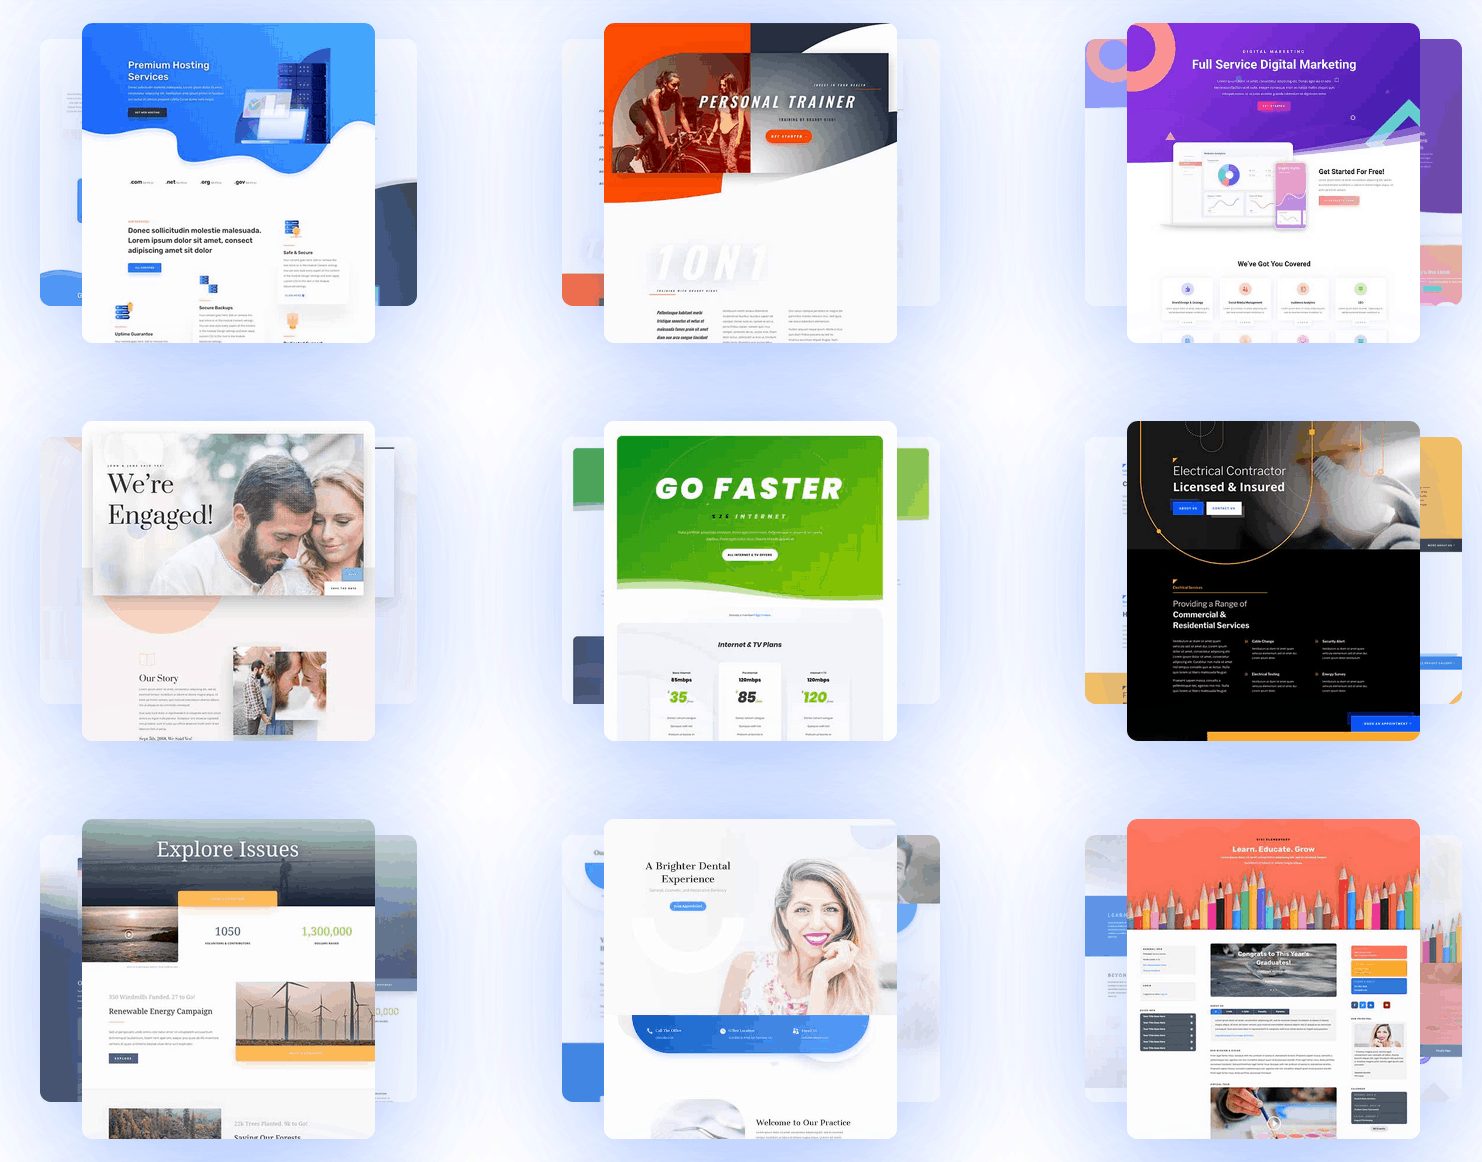 Choosing a free WordPress theme is one of the biggest SEO mistakes to avoid! Divi comes with over 800+ premade website layouts! You don't need to struggle with complicated website designs anymore! Just pick what suits your fancy.